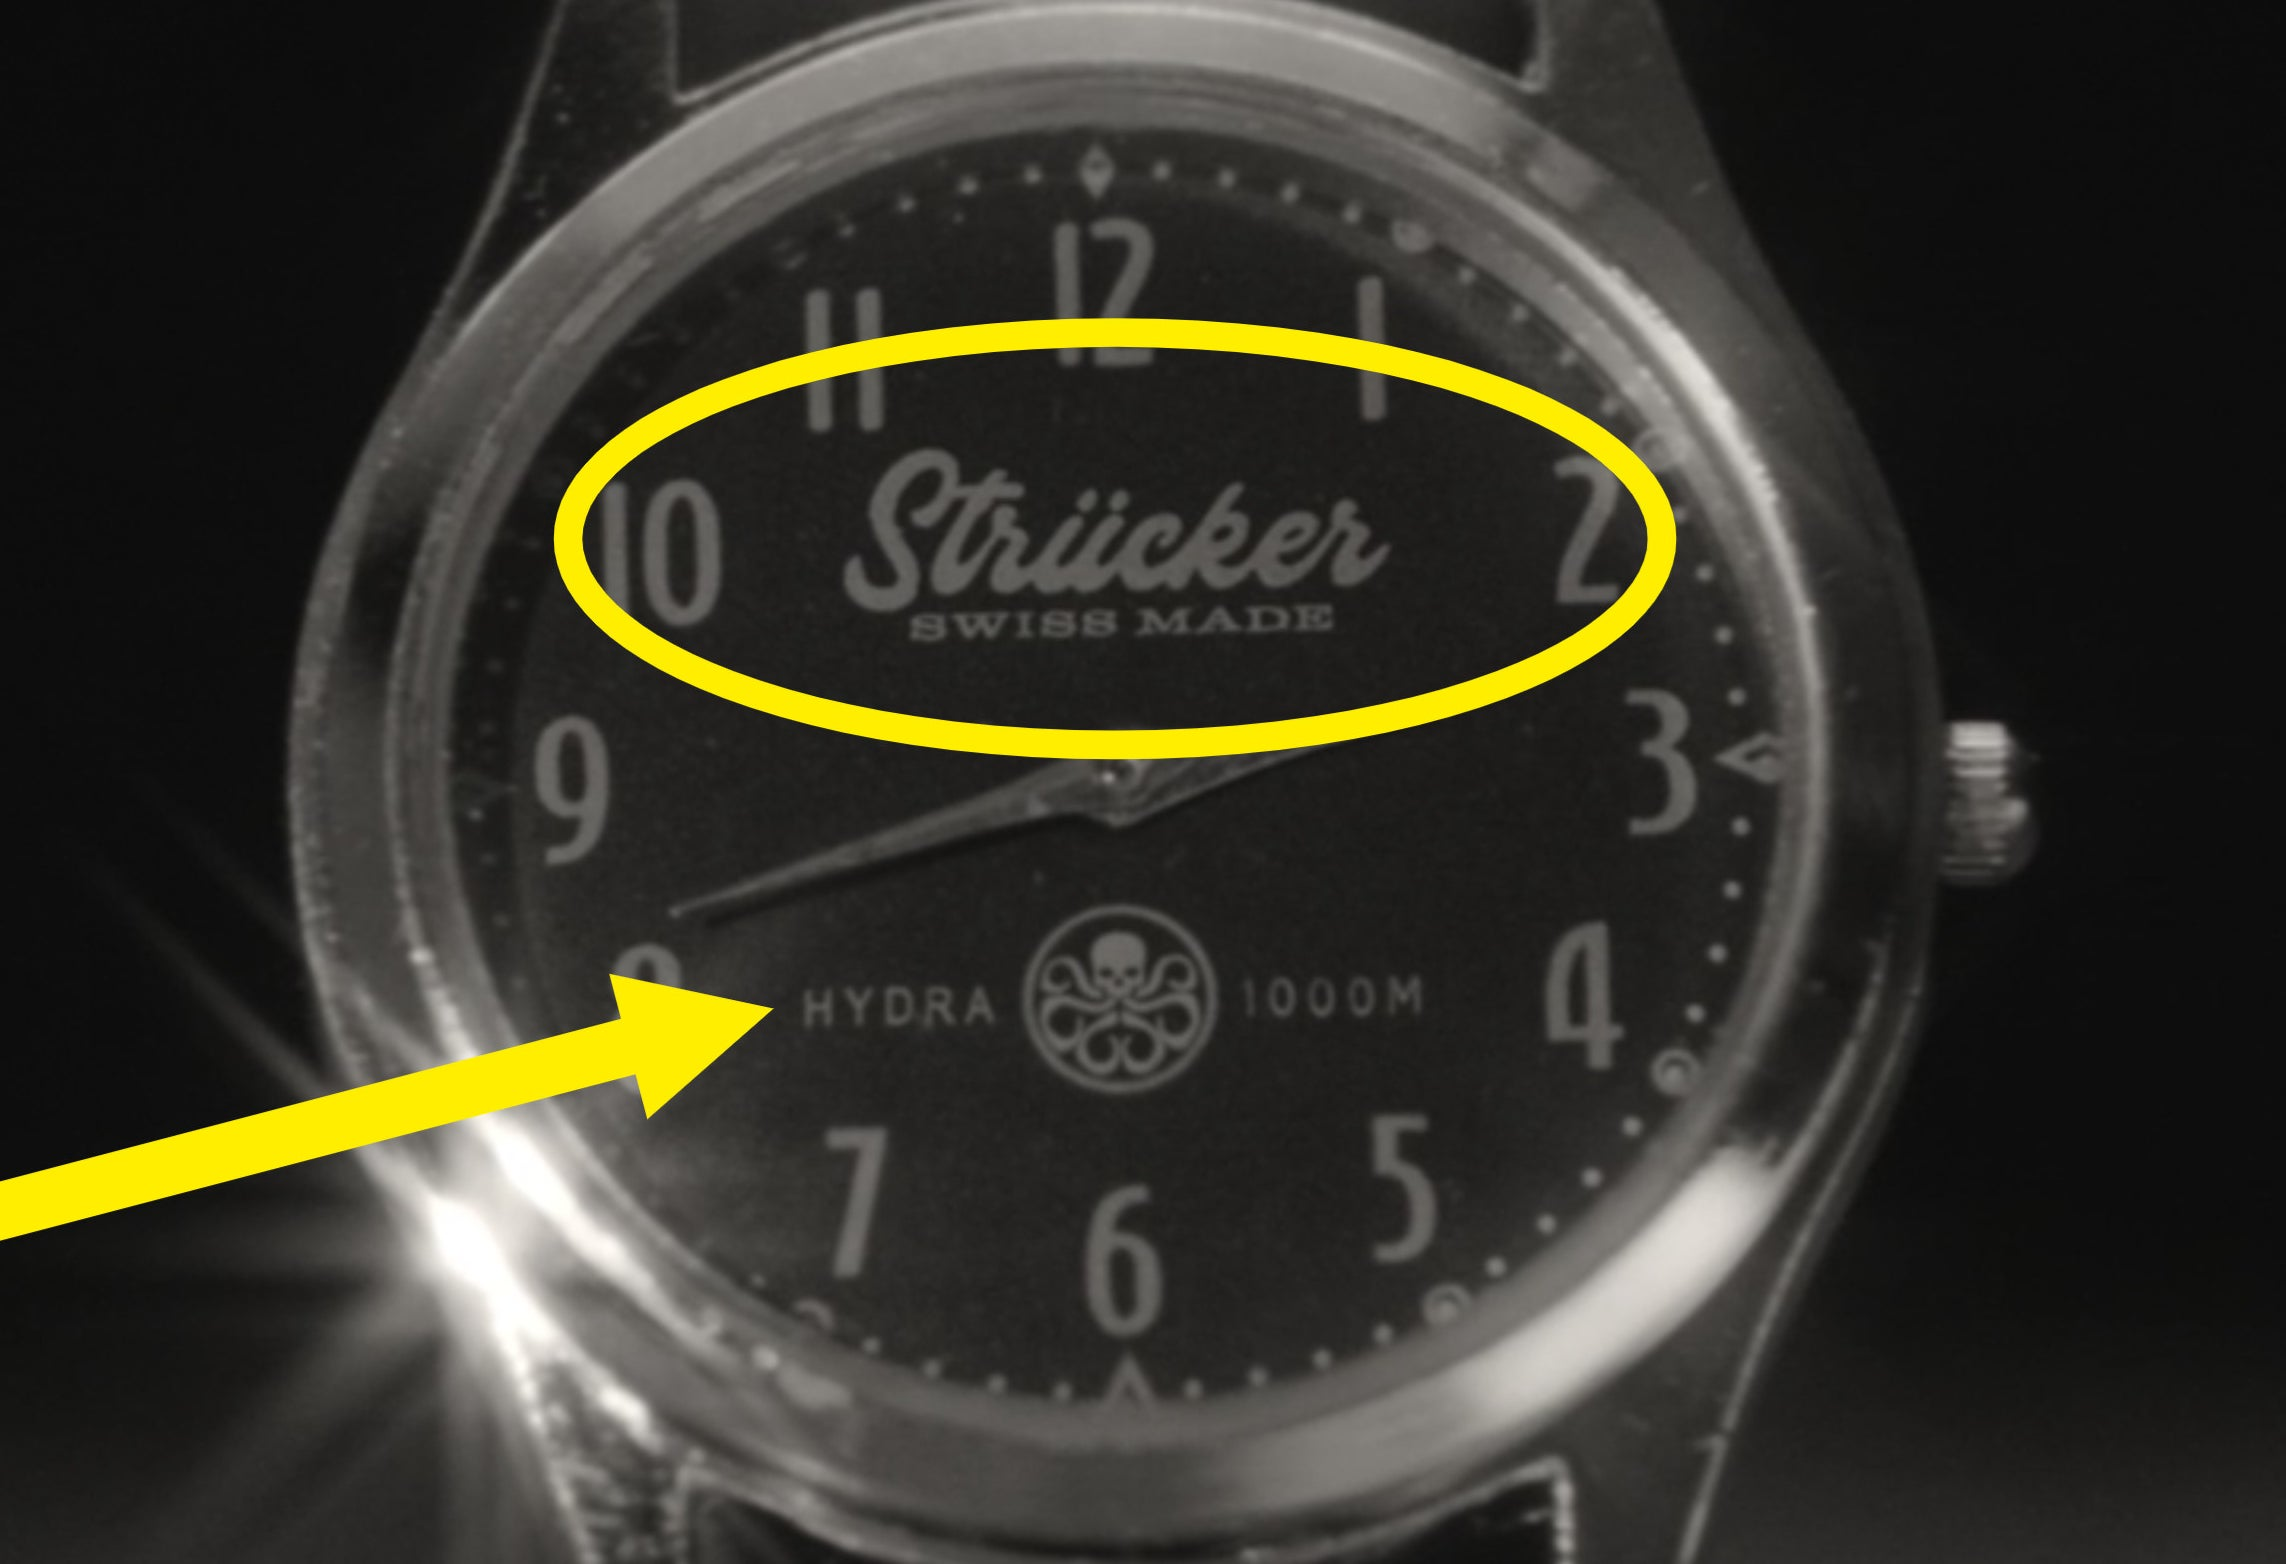 A close-up of the Strucker watch that also says Hydra and has the Hydra logo